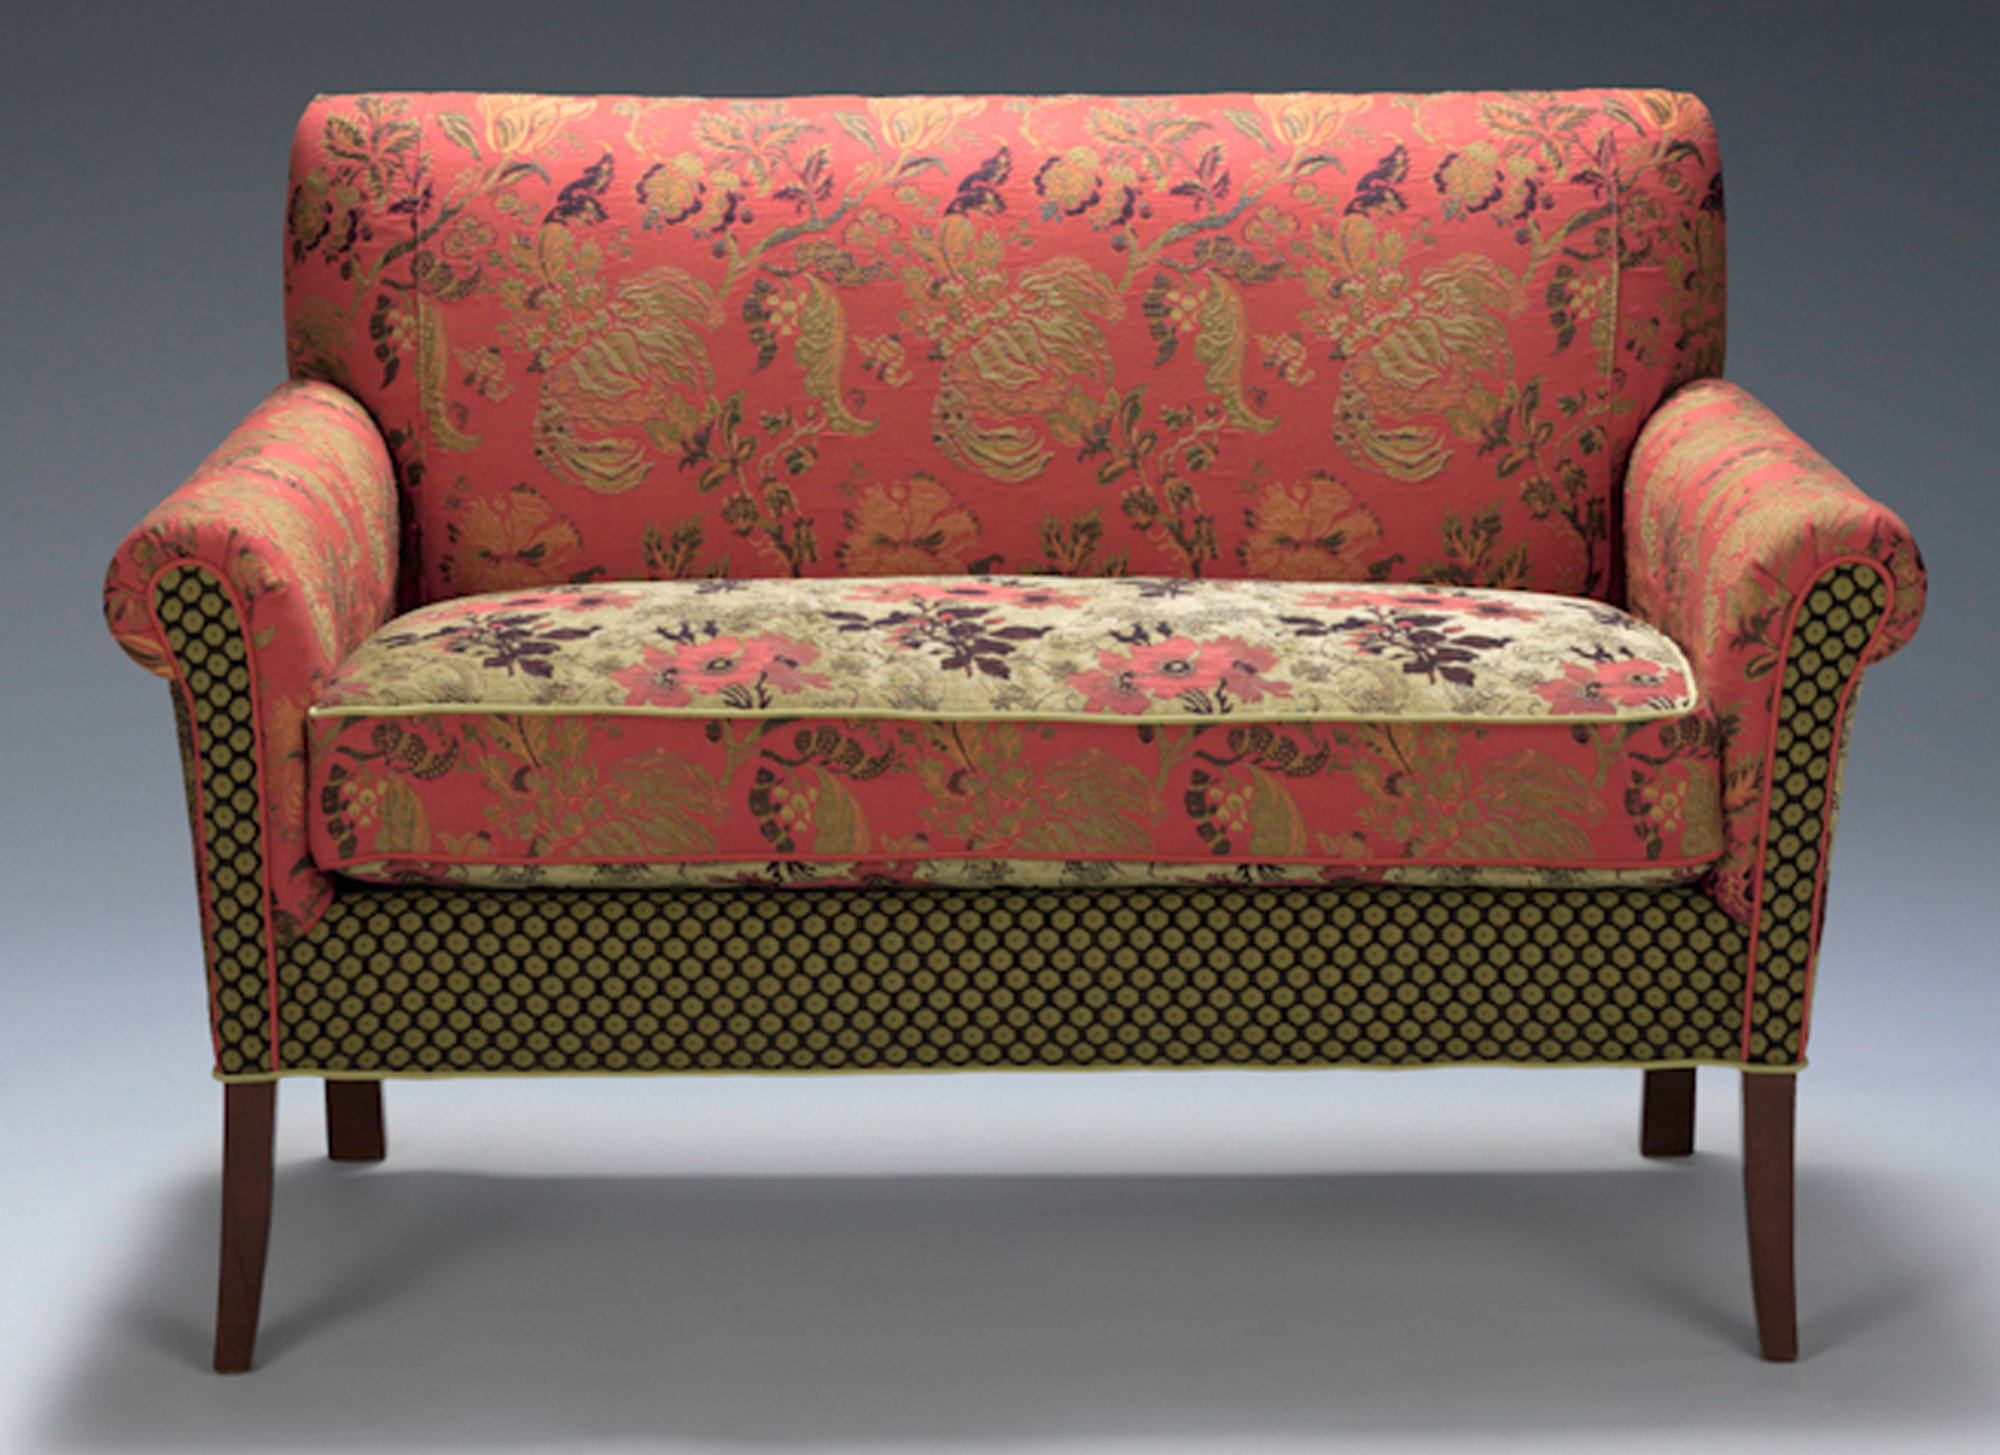 sofa upholstery fabric ideas natalie salon settee in melody rustic by mary lynn o 39shea